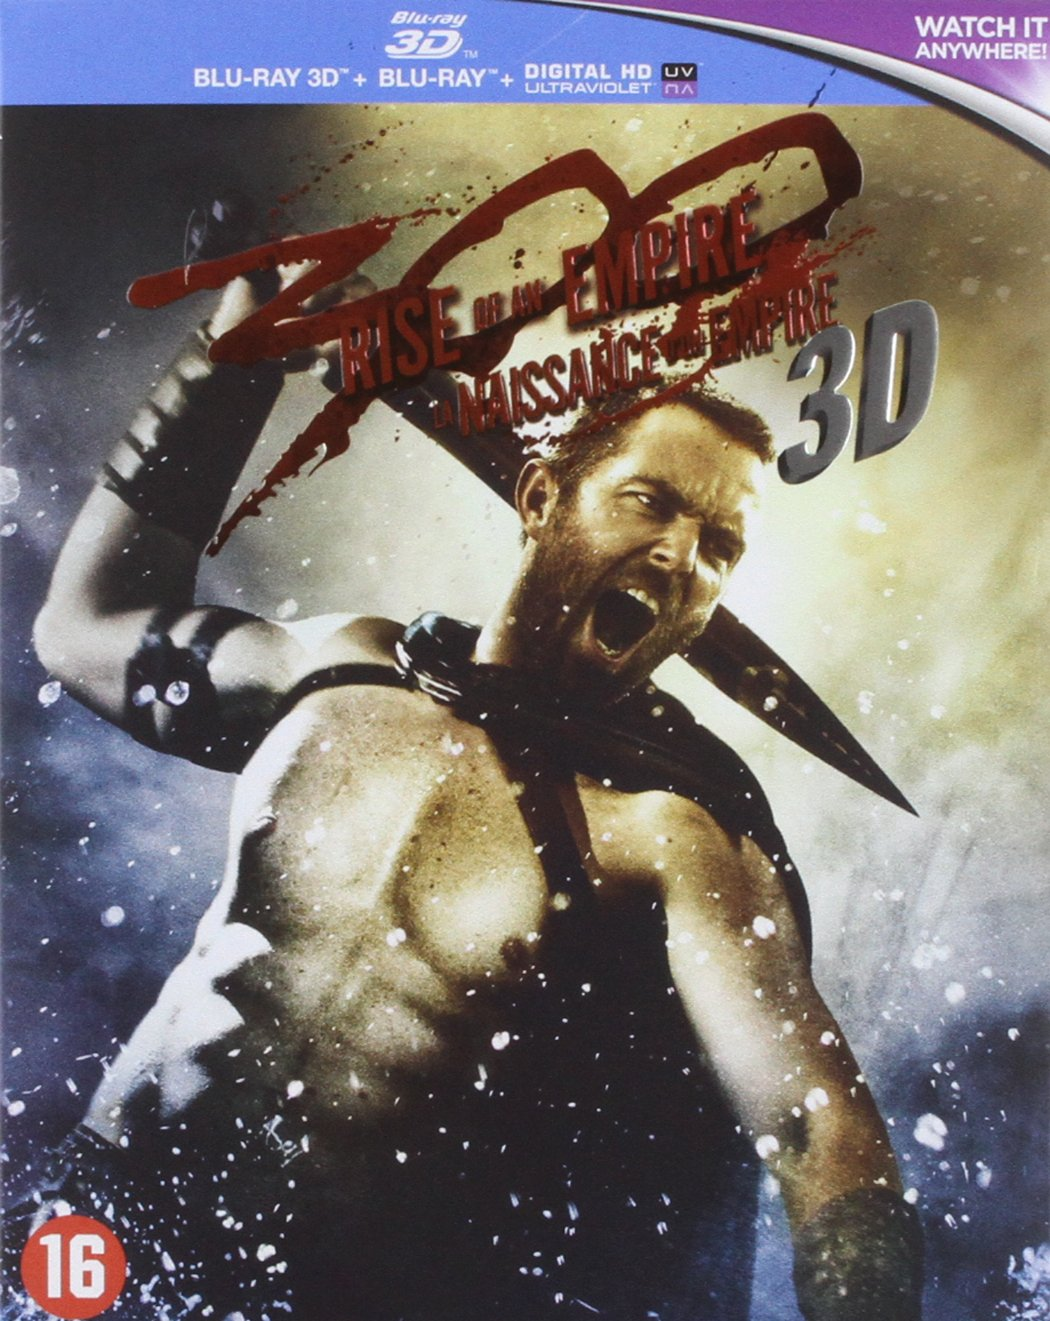 300 - Rise of an empire 3D [Reino Unido] [Blu-ray]